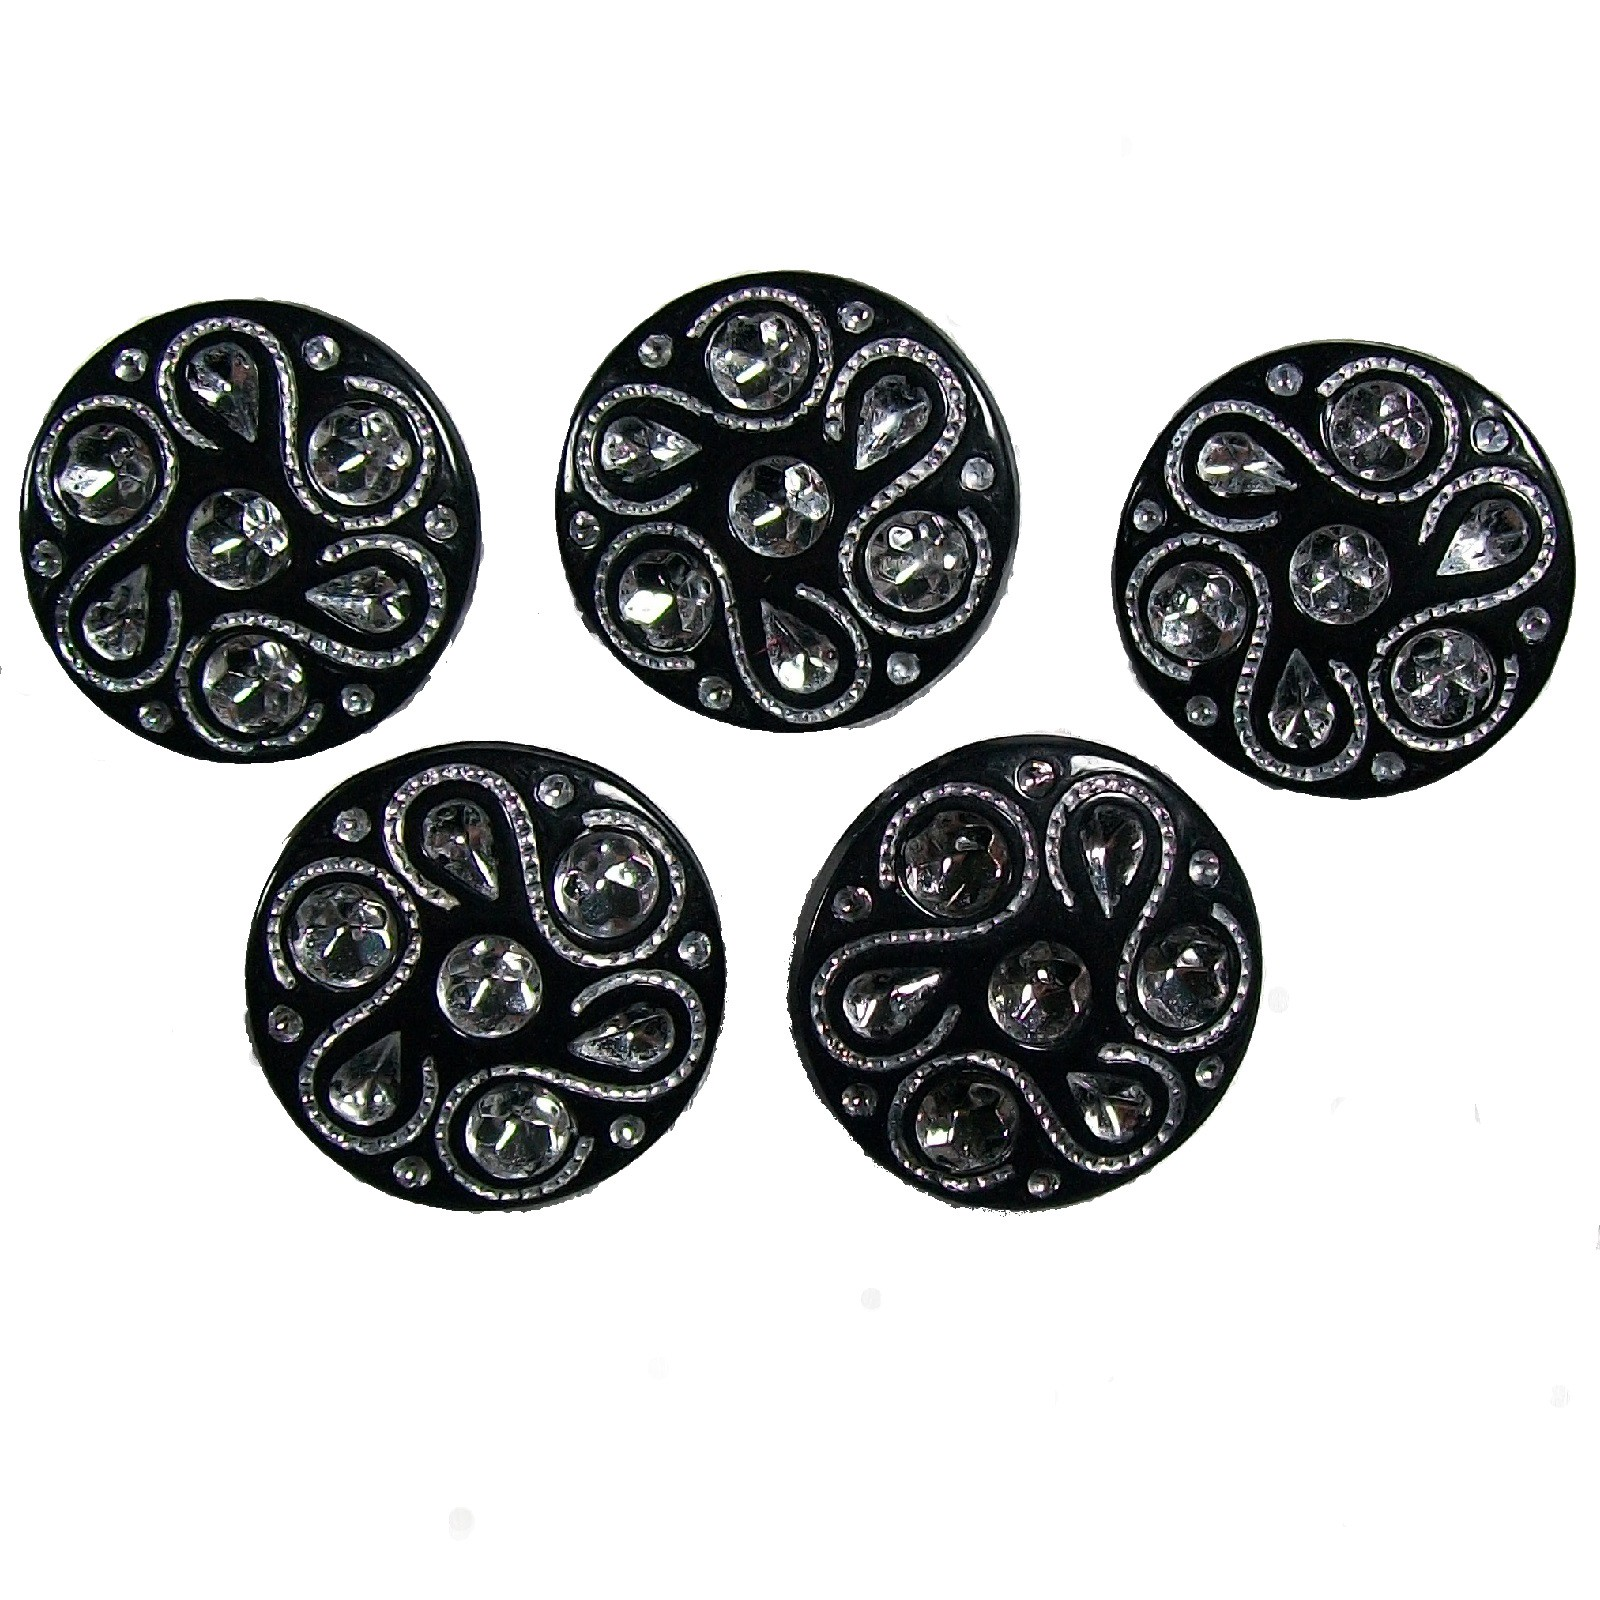 Black Diamante Art Deco Style Buttons 15mm Round Pack of 5